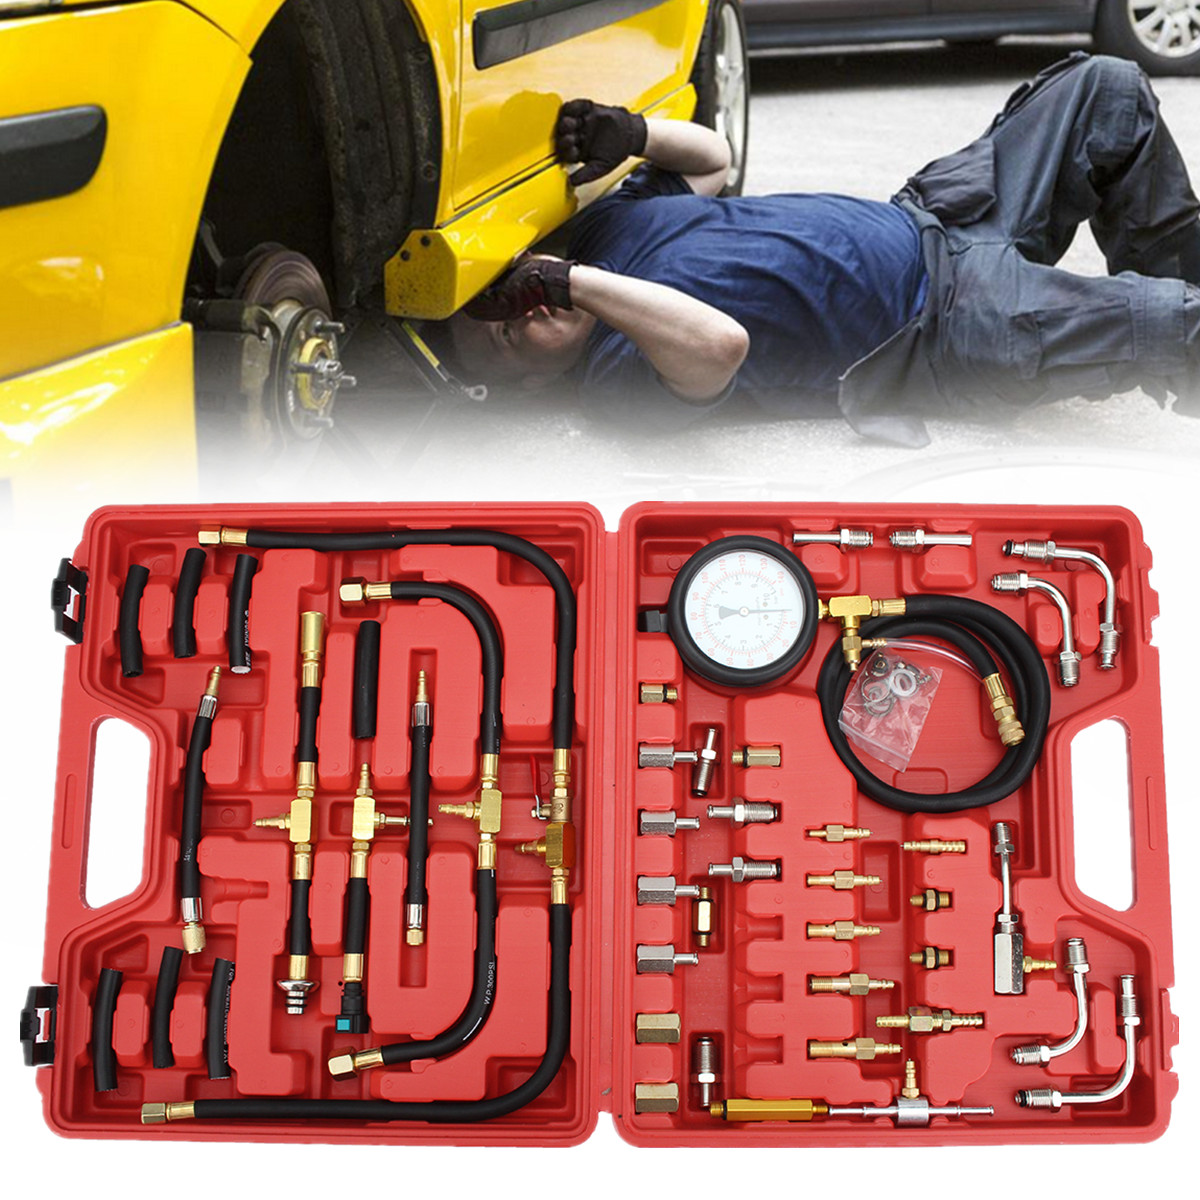 Fuel Injection Pump Pressure Injector Tester 140psi Test Pressure Gauge Kit Case Universal 32 Adapters 3-way-valve Vehicle car style tu 443 fuel injection pressure tester injector pump pressure gauge gasoline test set 0 140psi for cars